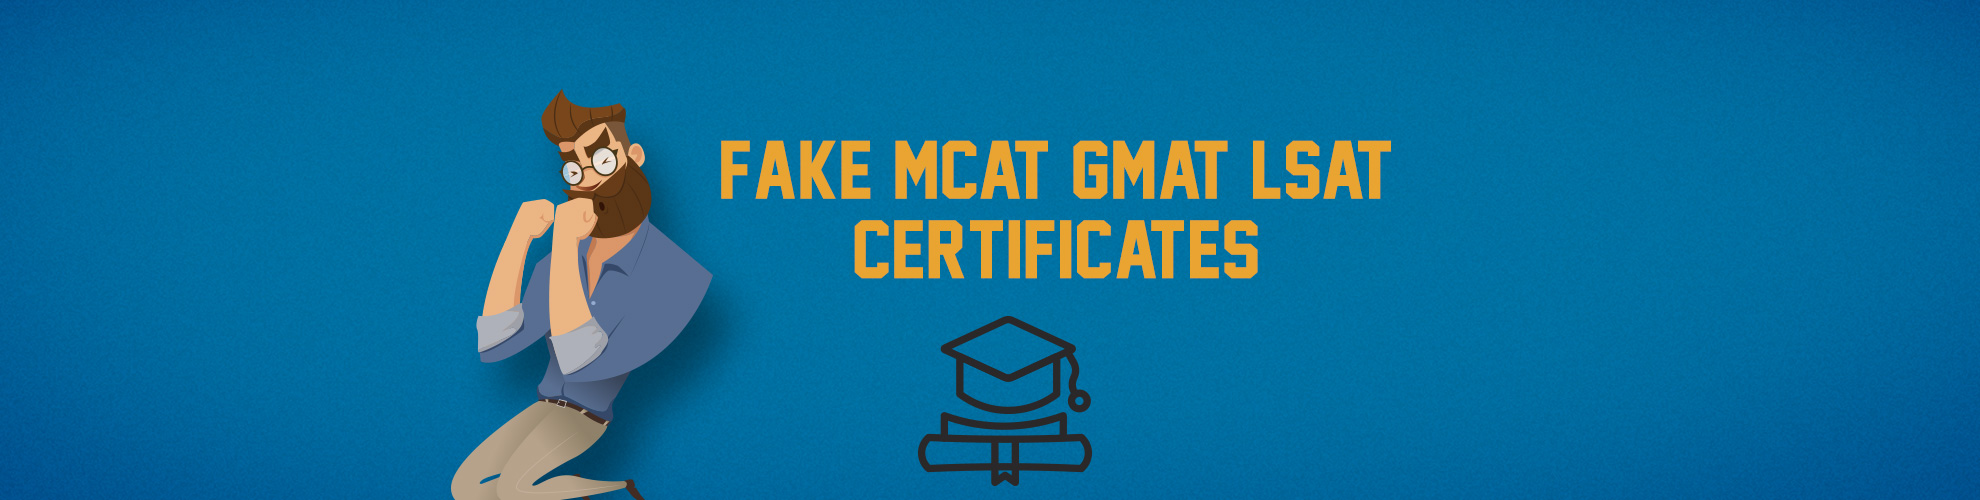 Fake MCAT GMAT LSAT Certificates